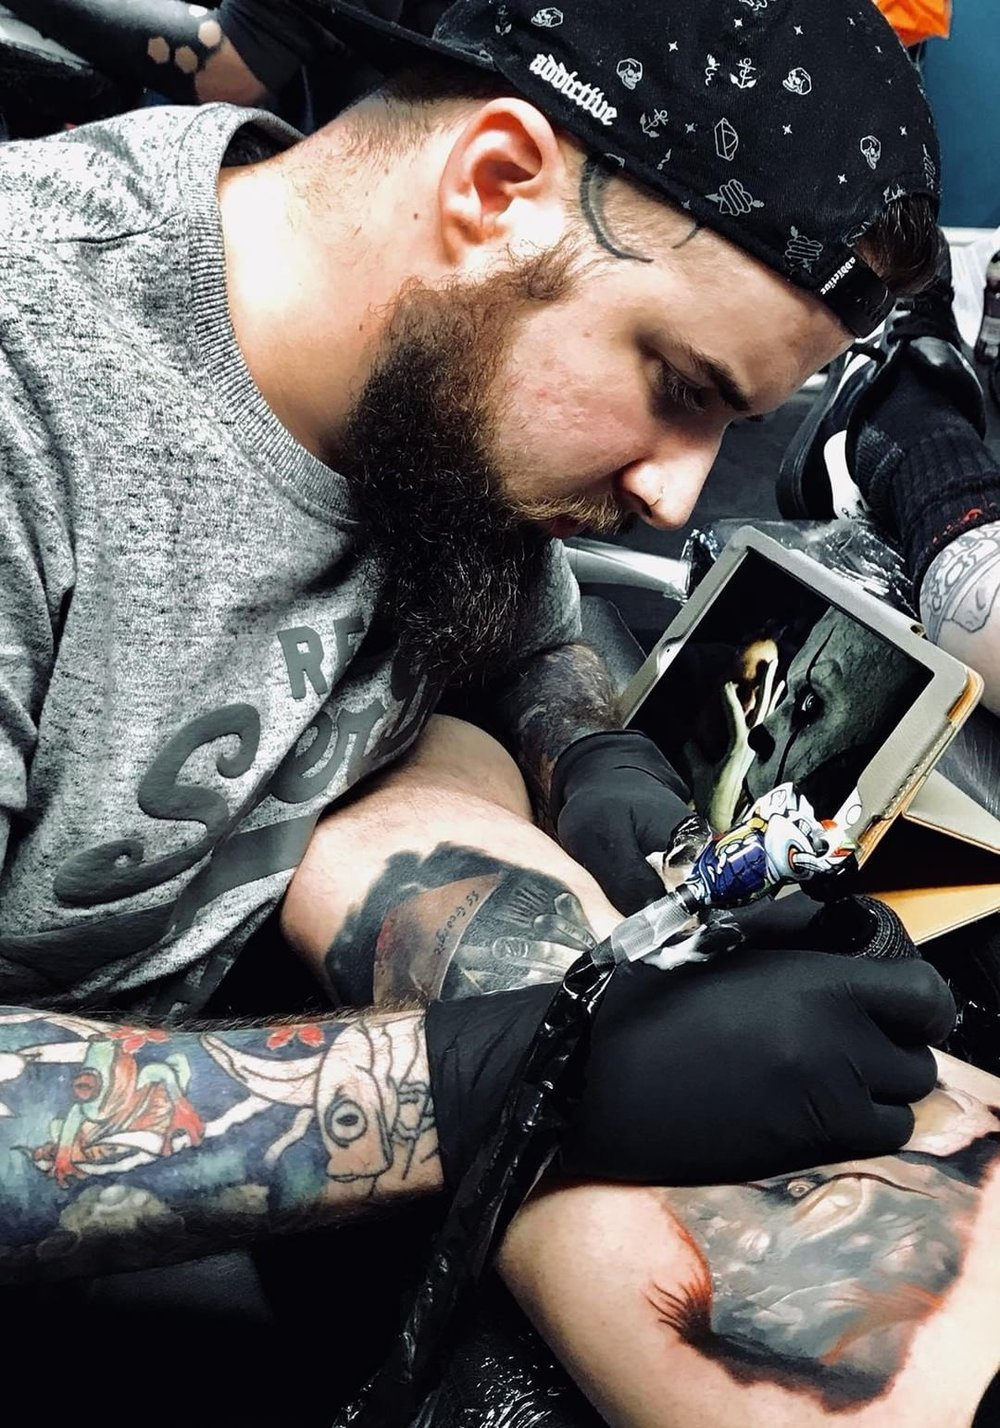 Simon Barraclough - Simon Specializes in black and gray realism and horror tattoos. He has been tattooing for 6 years and has his own studio Shipwrecked Tattoo. Click on his picture to see his portfolio!!